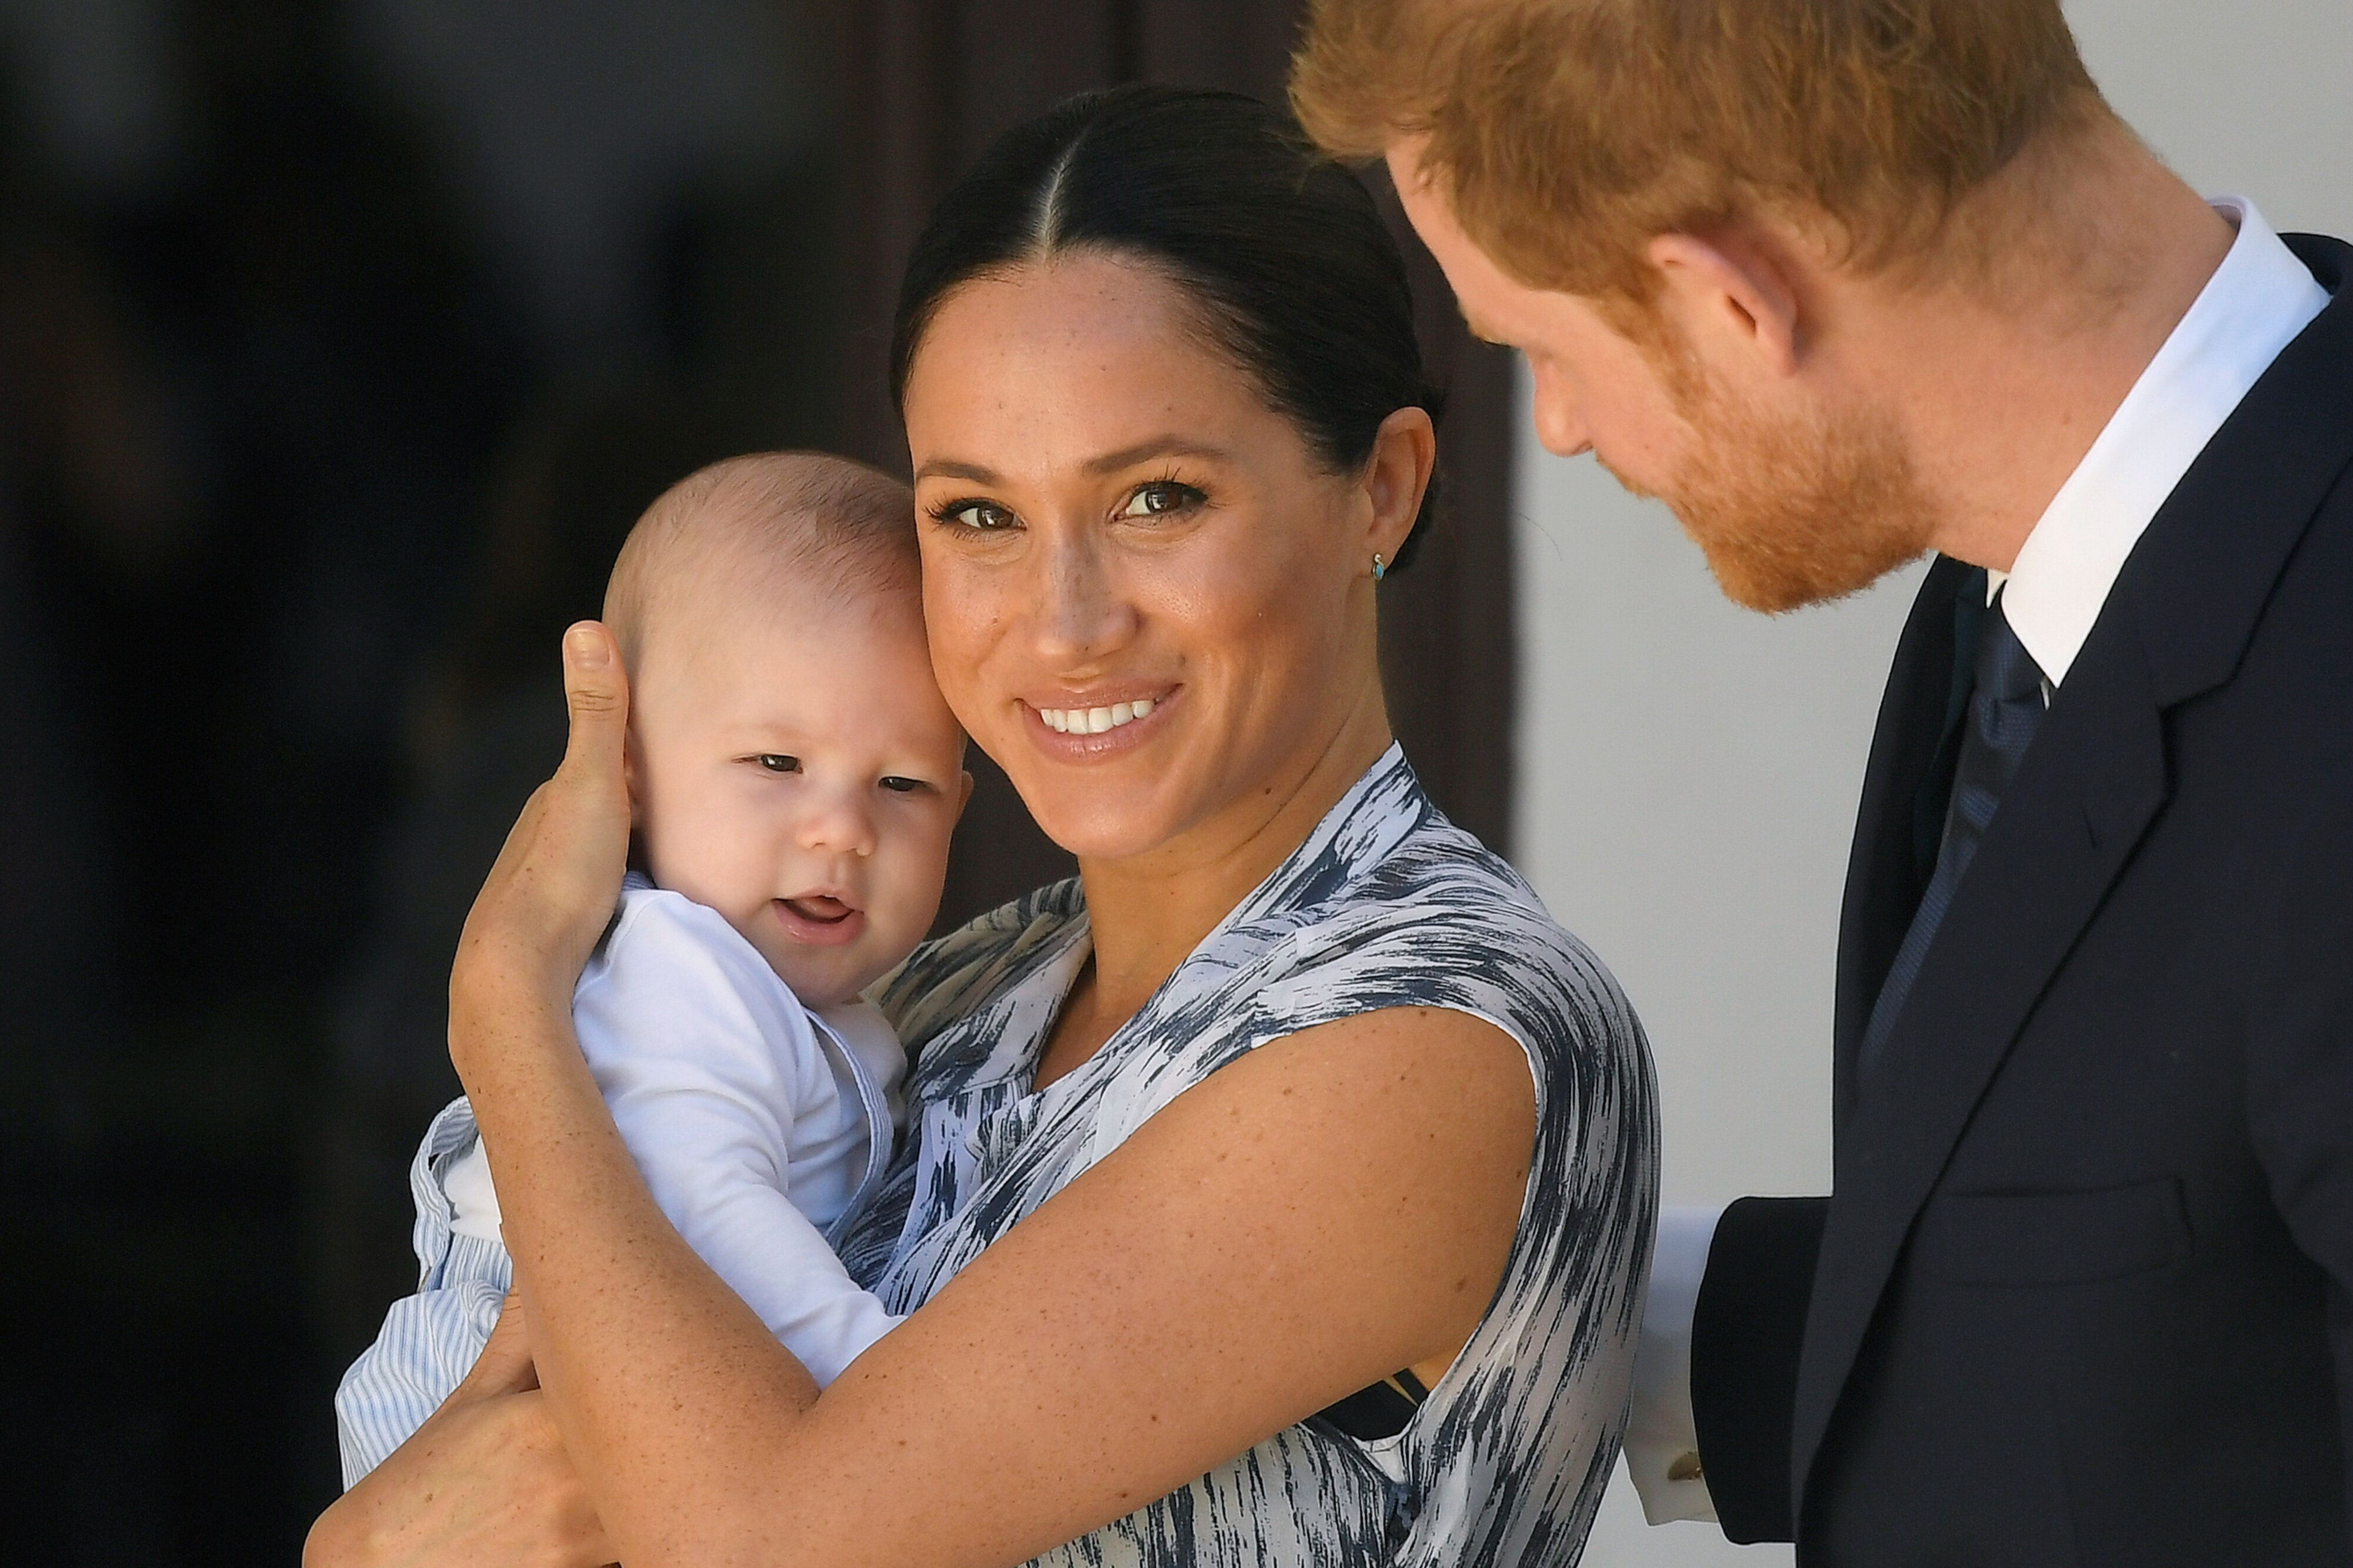 Archie, Meghan and Harry at a meeting with Archbishop Desmond Tutu at the Desmond & Leah Tutu Legacy Foundation during th